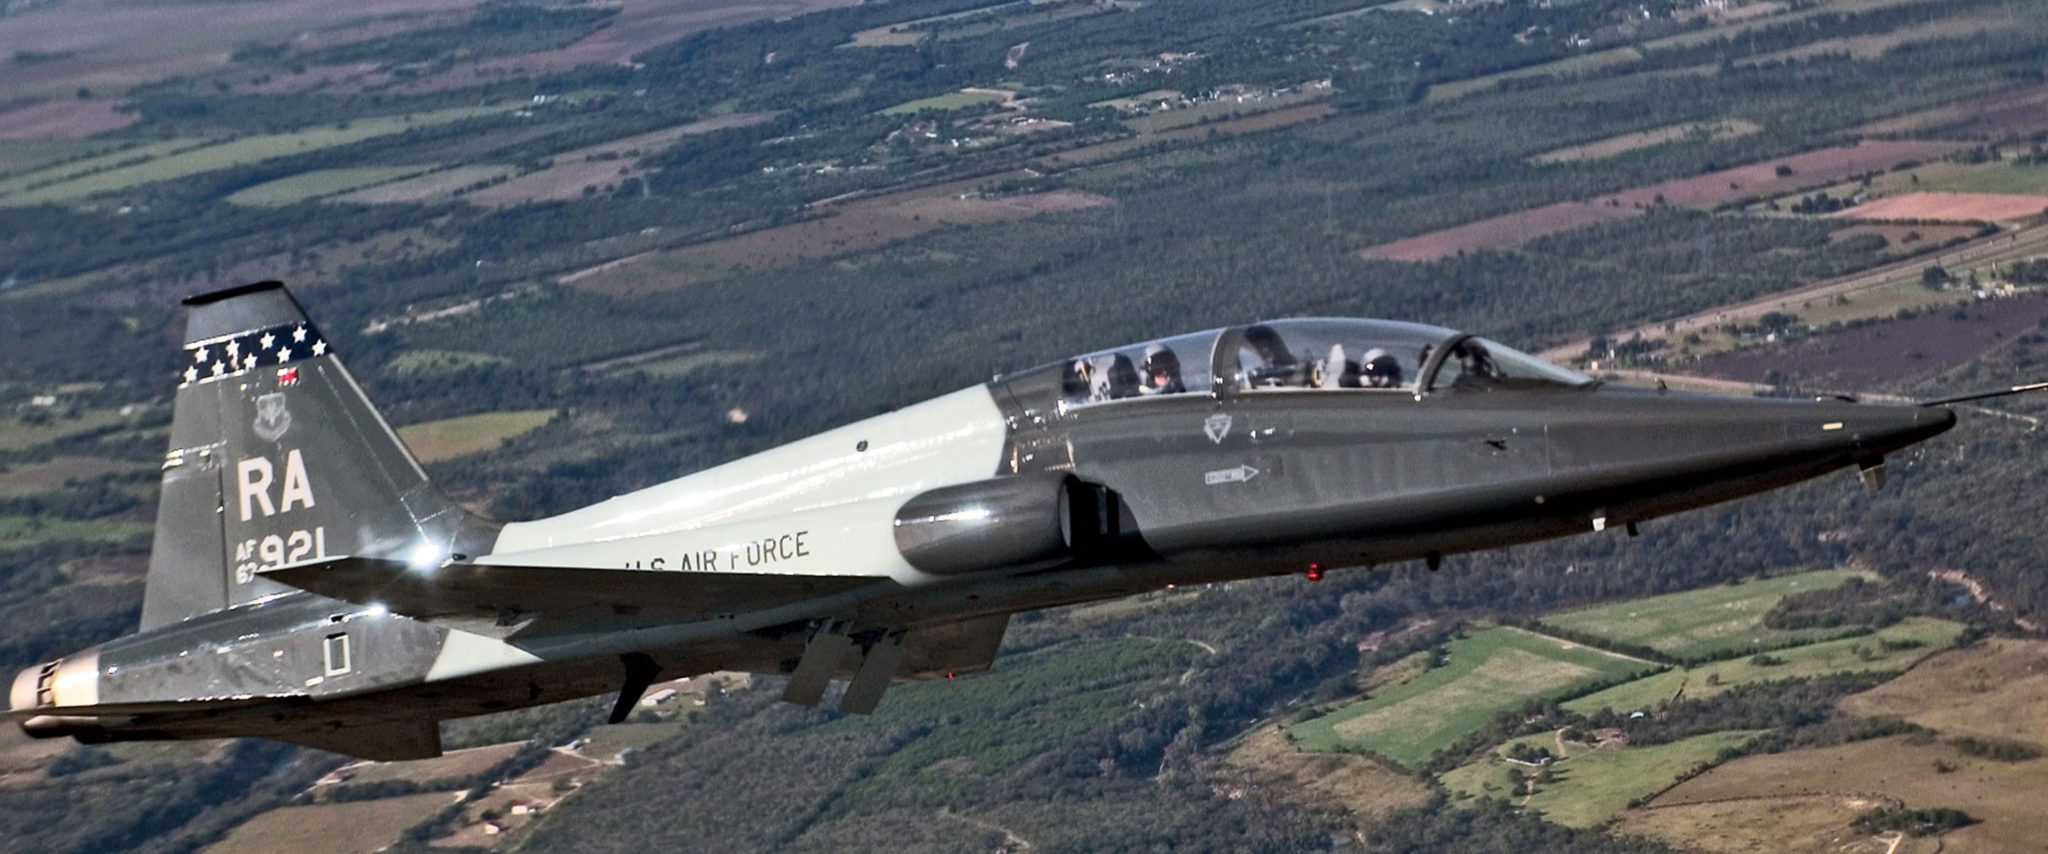 T-X to replace T-38 at pilot training bases - Daedalians